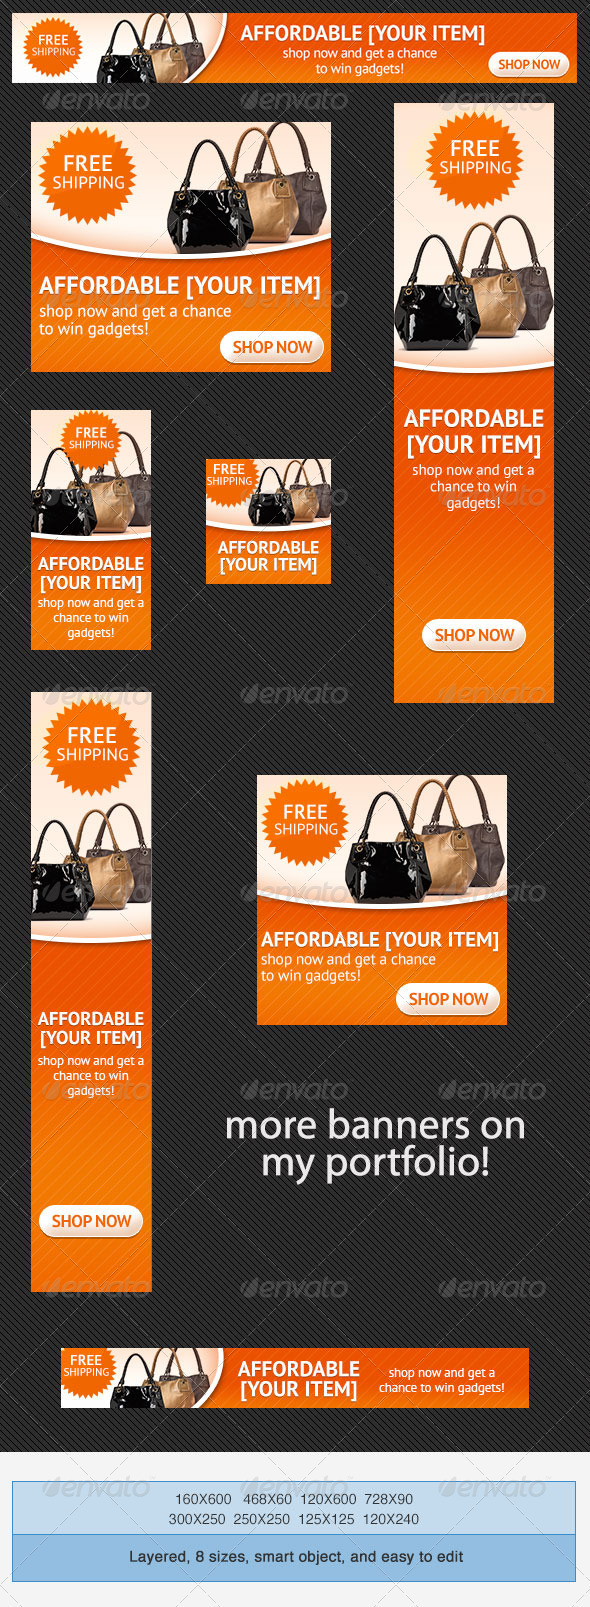 Online Shopping PSD Banner Ad Template - Banners & Ads Web Elements